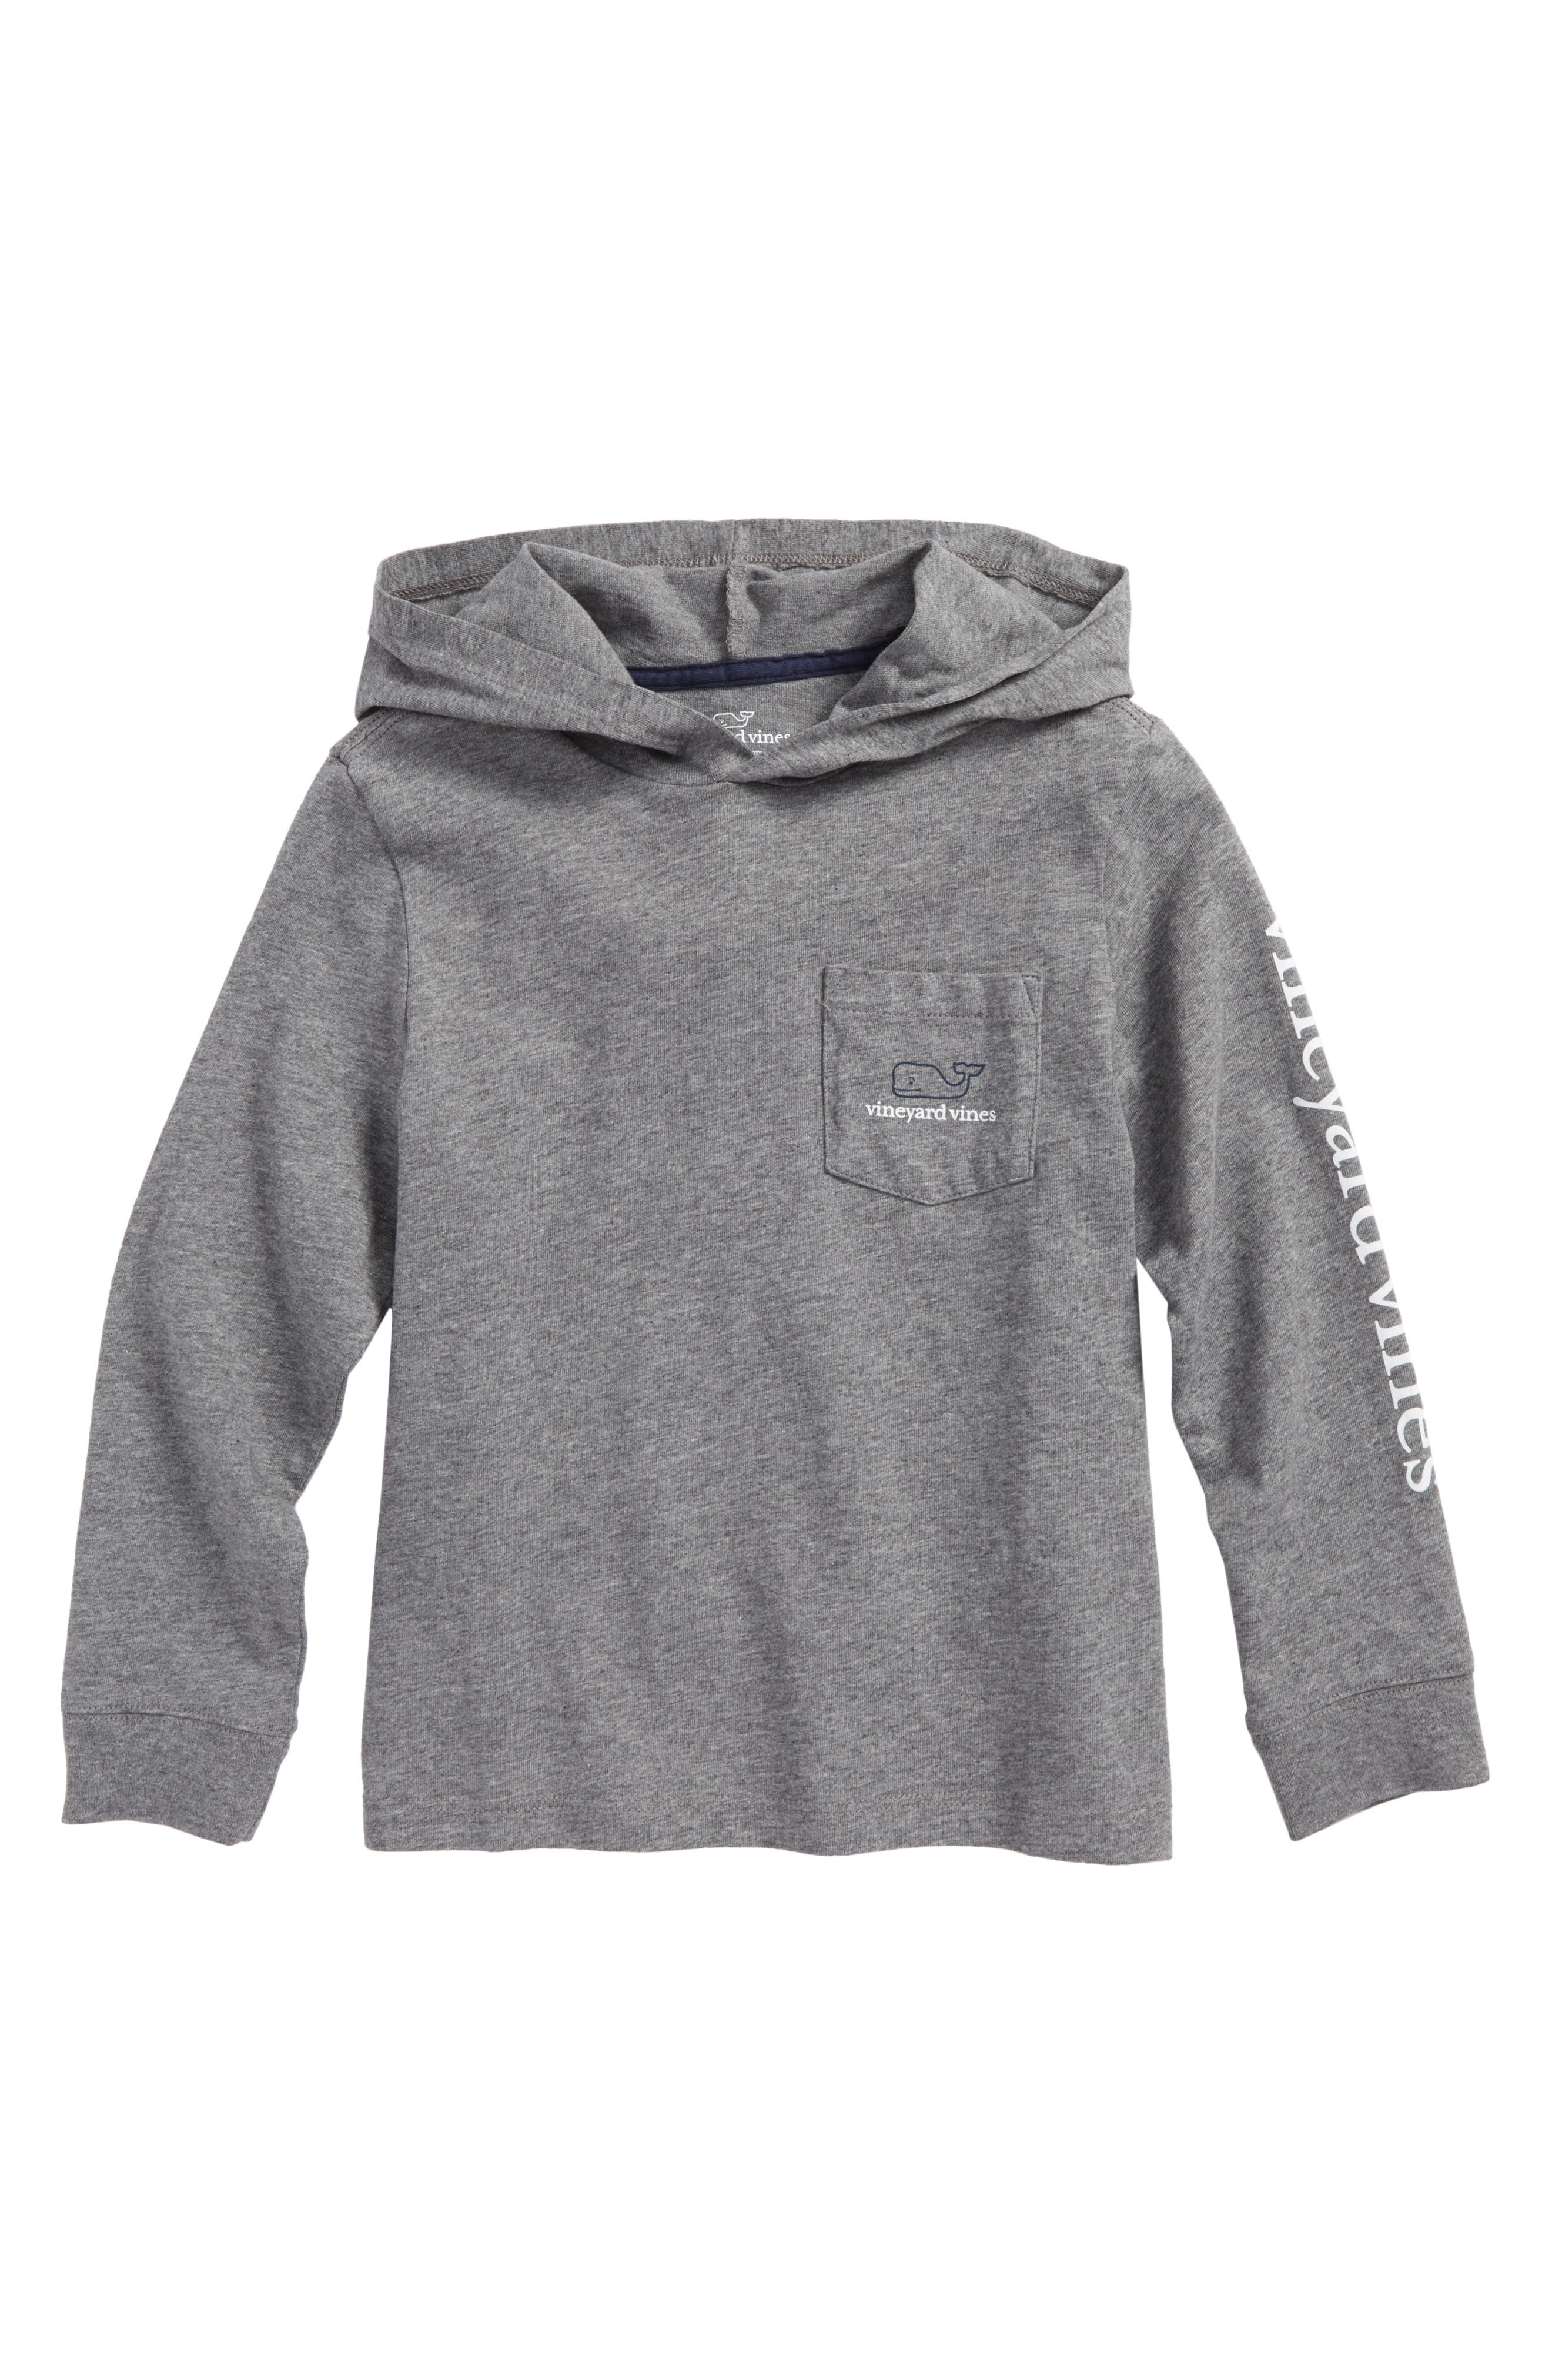 Two-Tone Whale Hooded T-Shirt,                             Main thumbnail 1, color,                             Medium Heather Gray